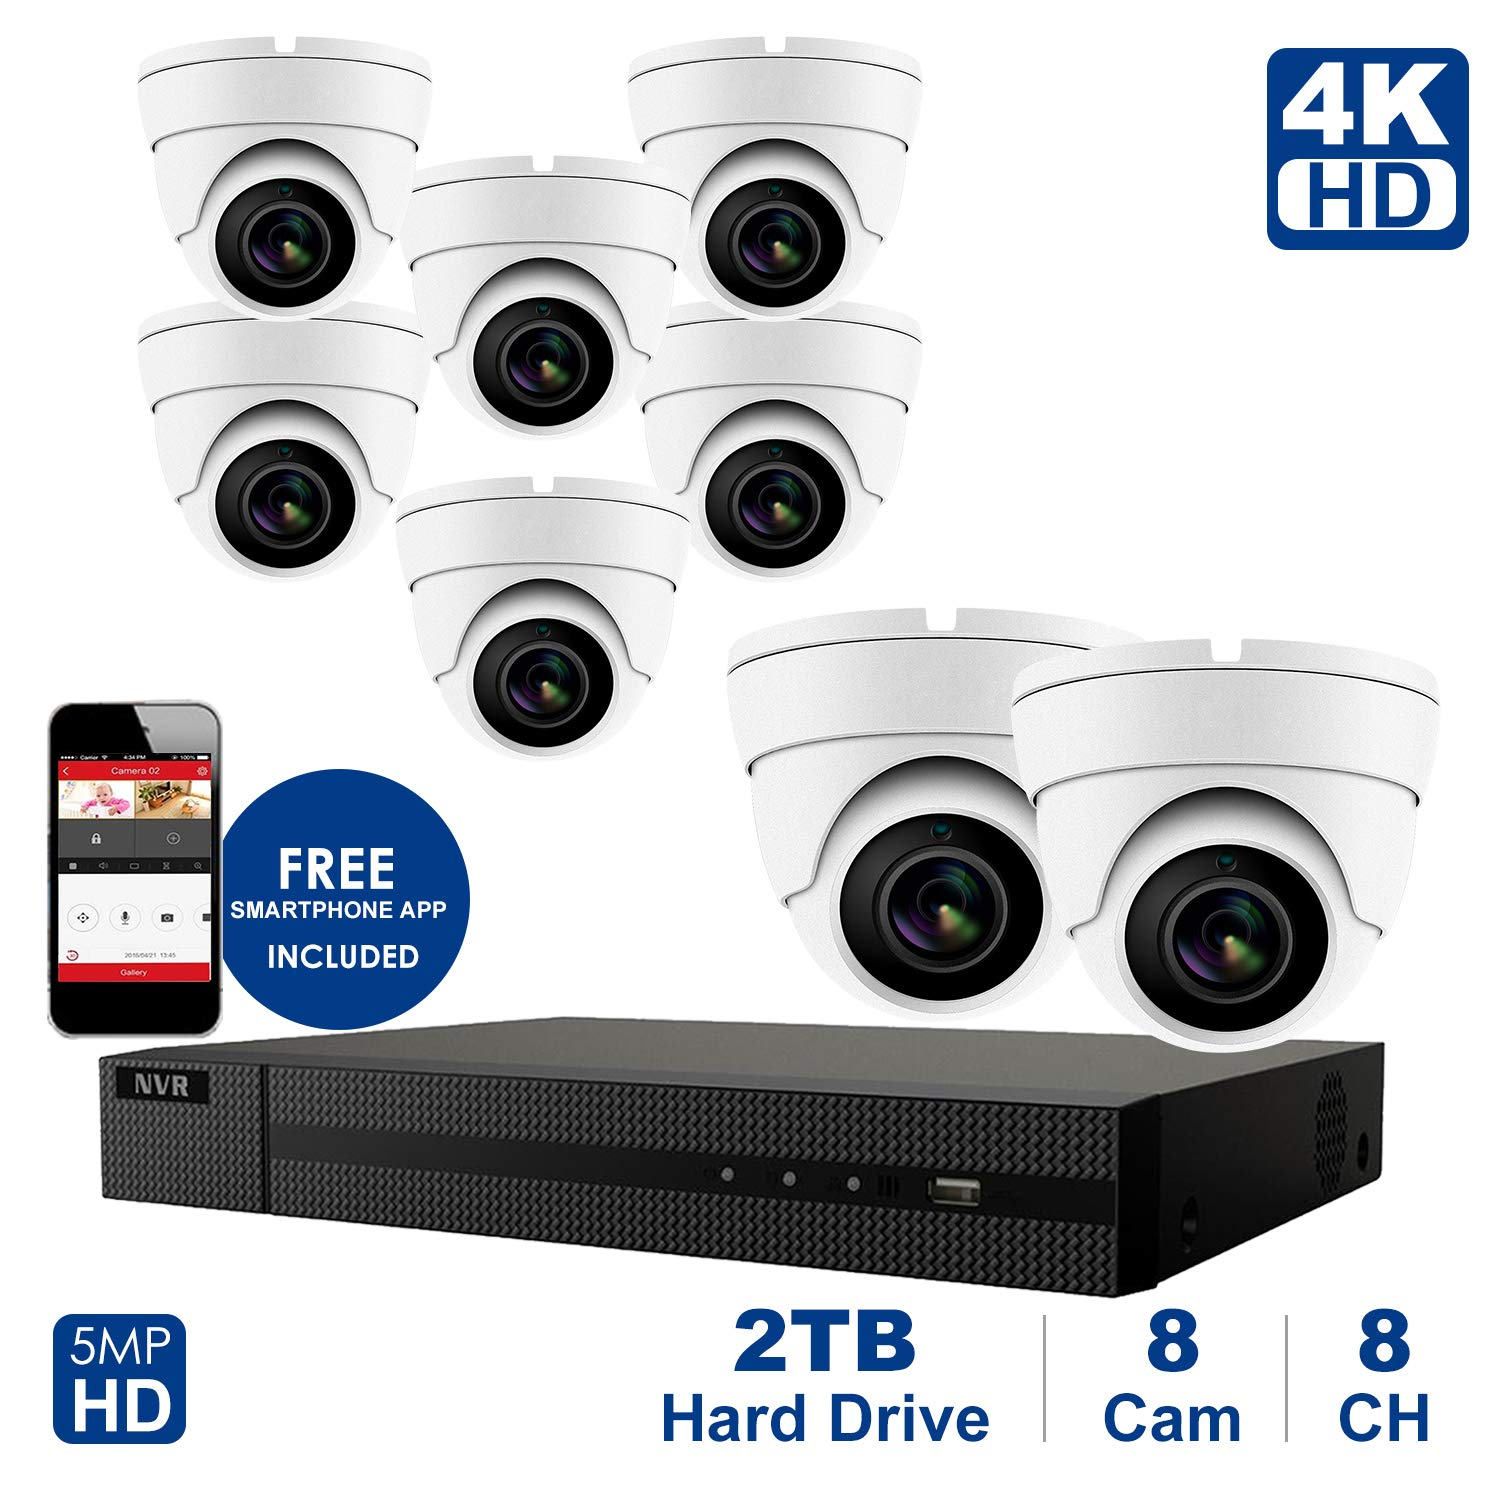 4K 8 CH NVR with Home Security System with 5MP IP Poe Dome 8pcs White Security Dome Camera,Plug and Play,Remote Home Monitoring System,2TB Storage (8 Channel System, 8pcs Whitedome Cameras) by Anpvees